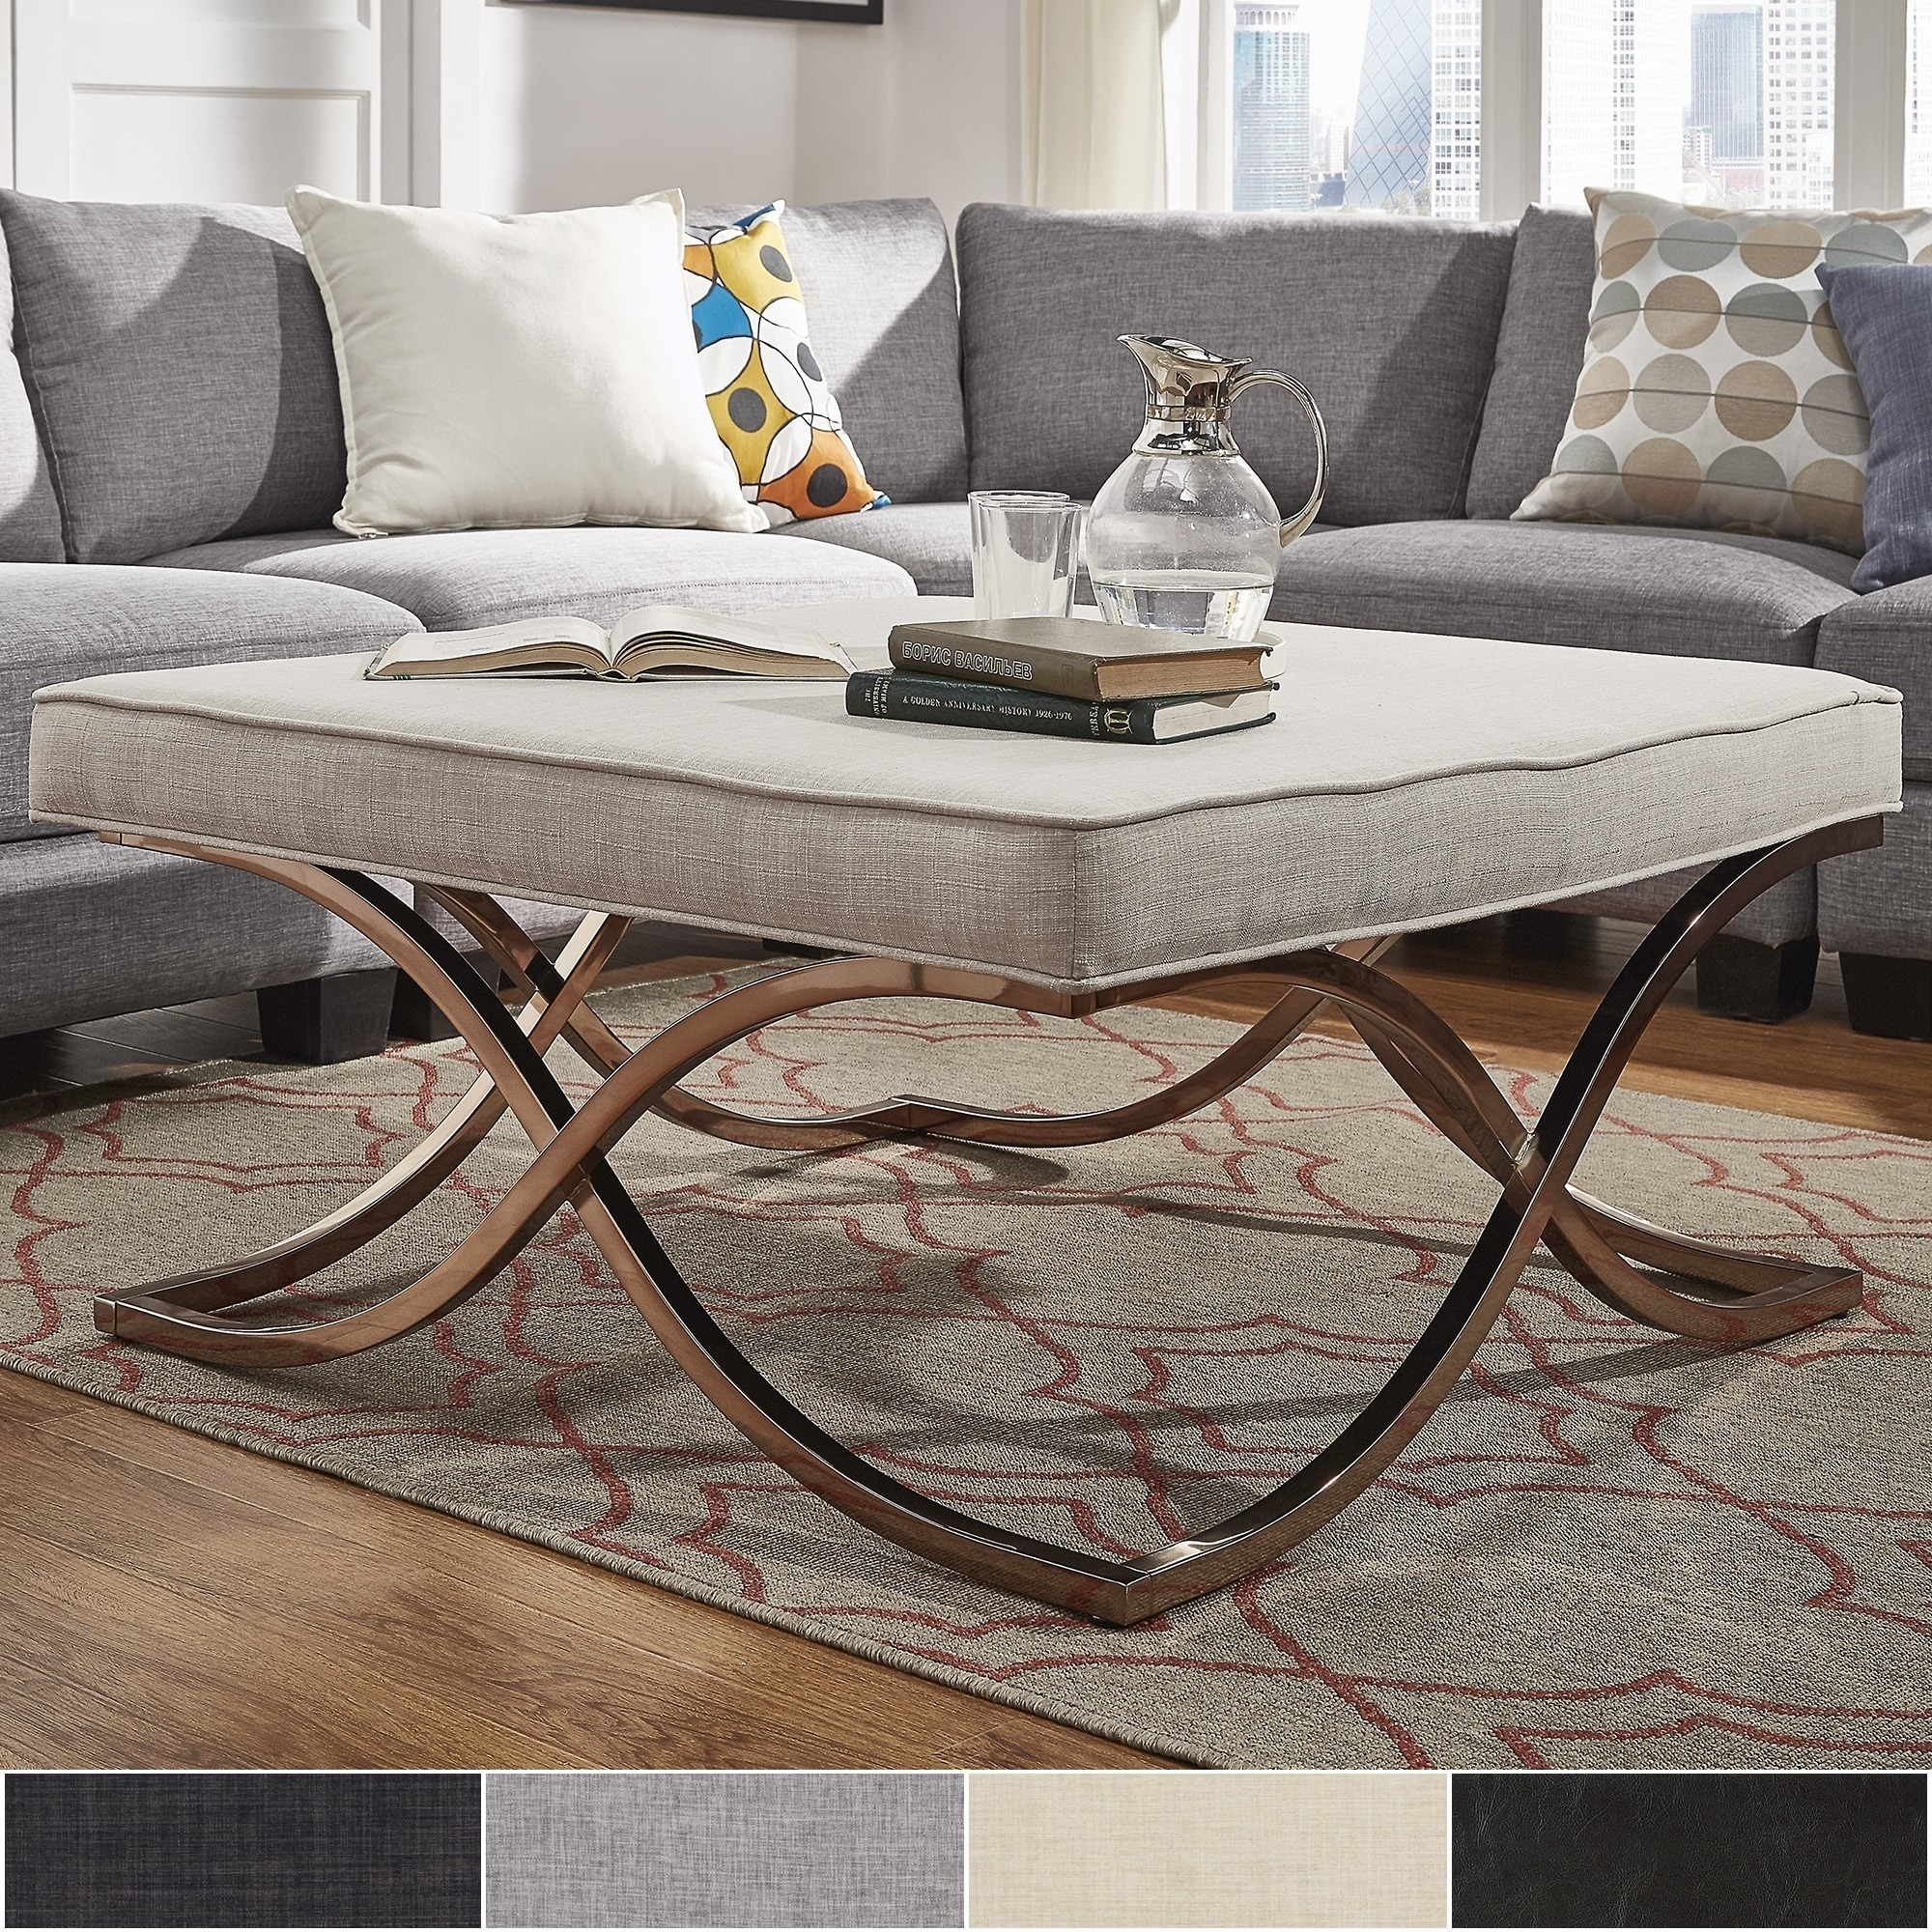 Shop Solene X Base Square Ottoman Coffee Table Champagne Gold By